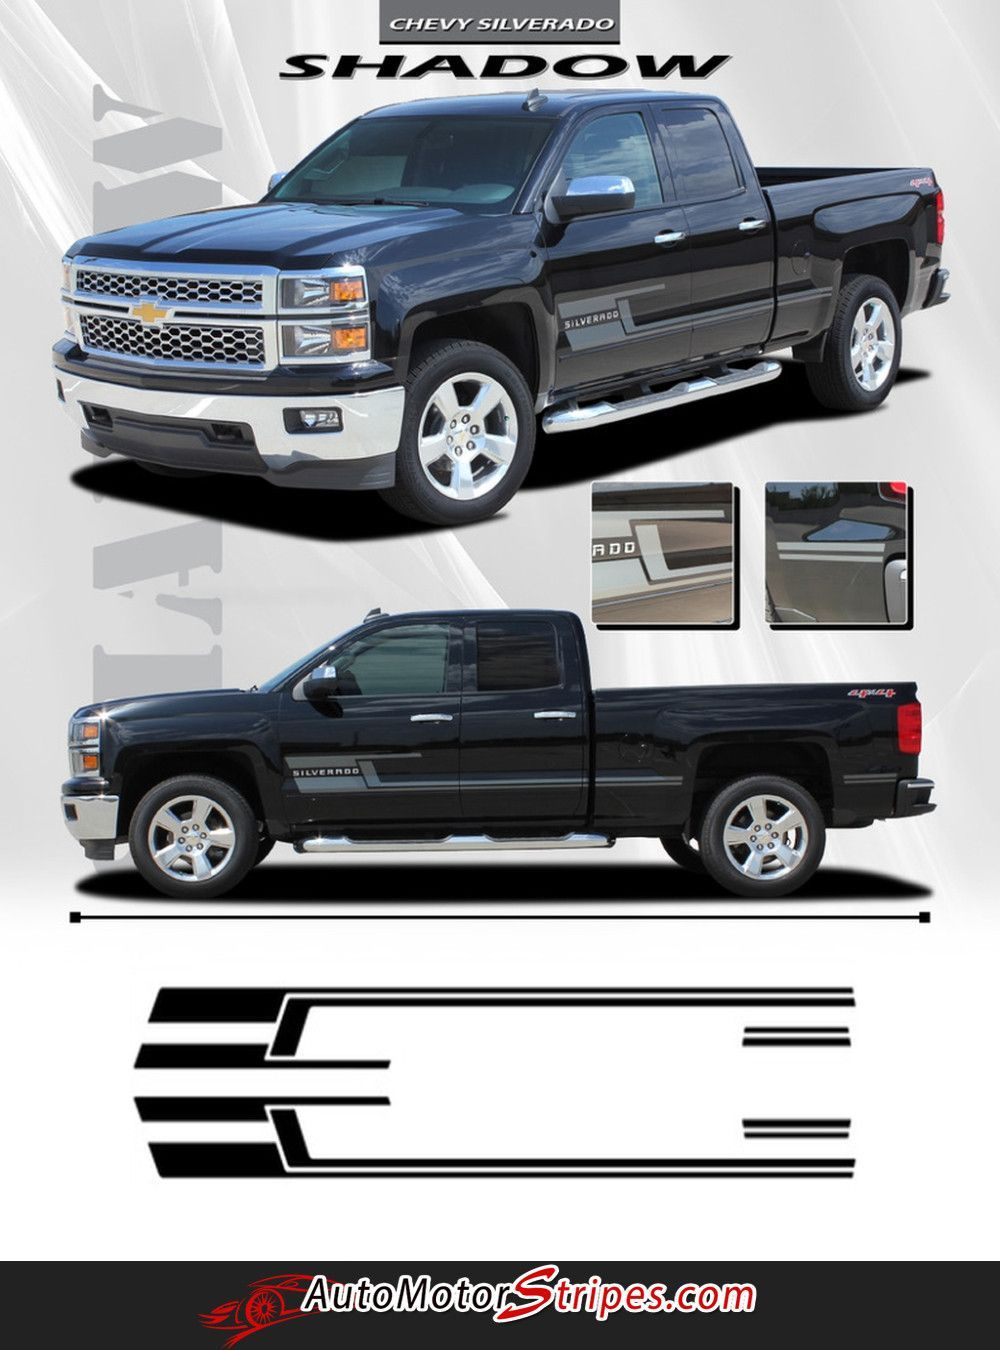 Chevy Silverado Special Edition Rally Style FLOW Truck - Chevy silverado stickers